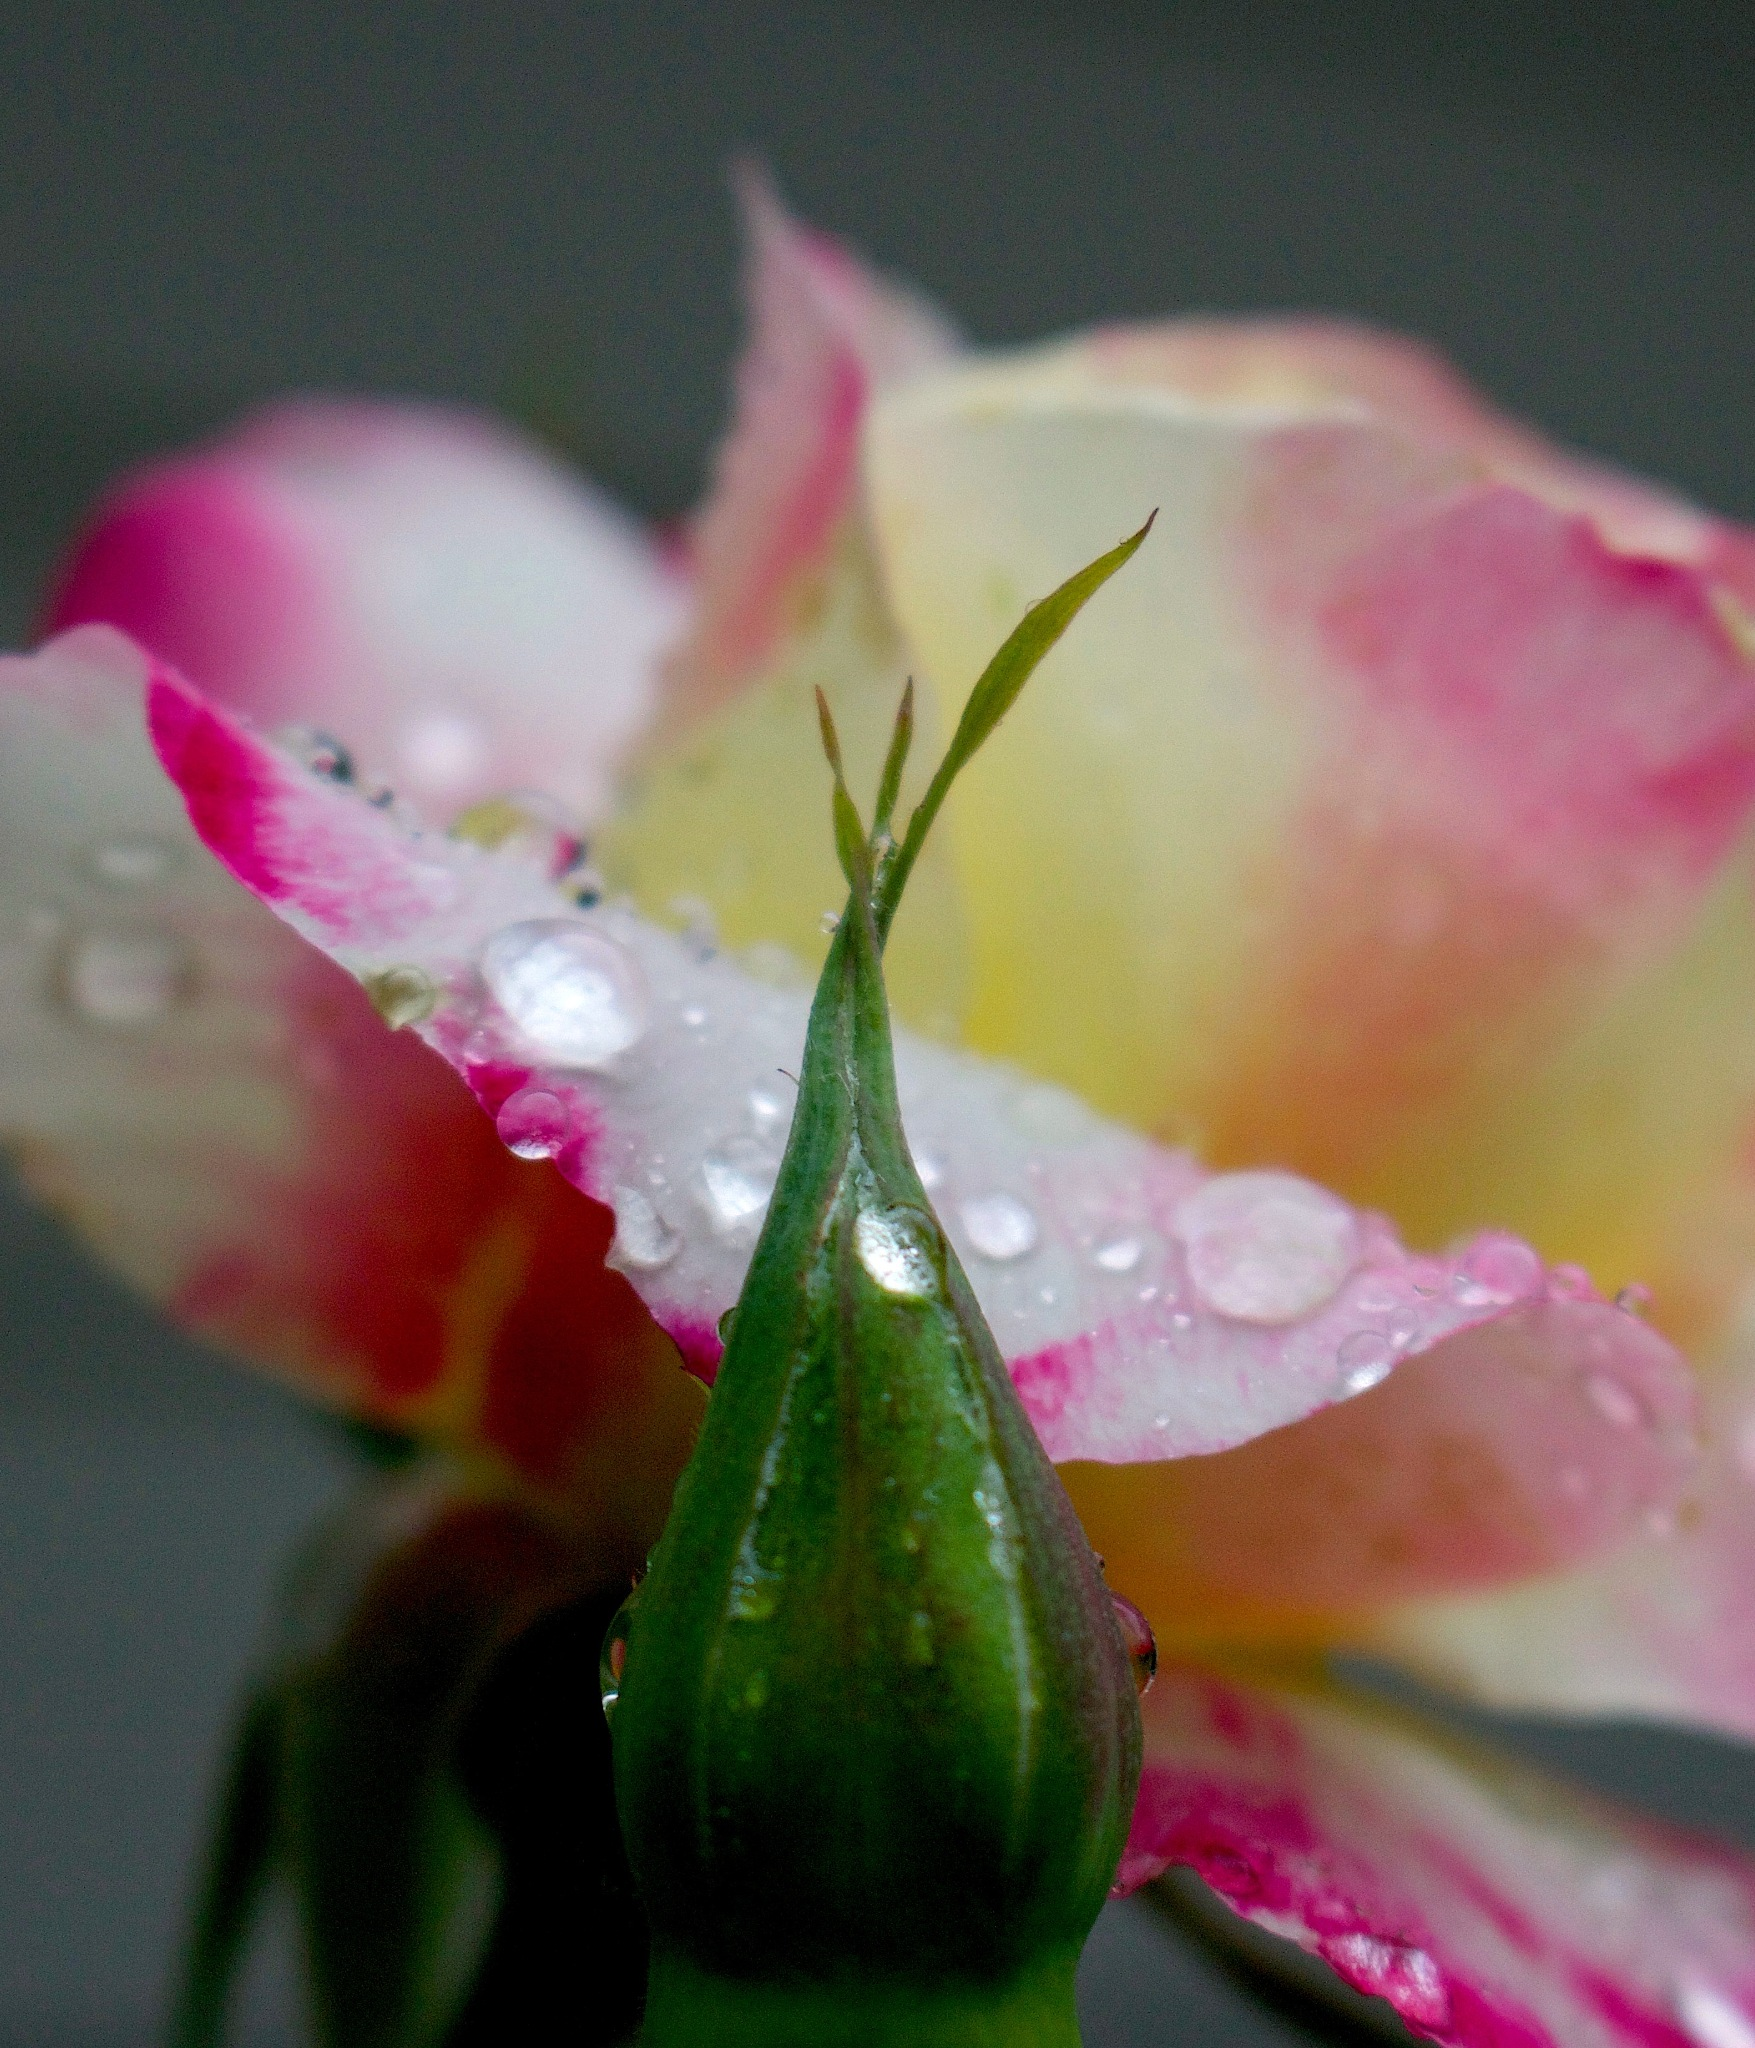 Raindrops on Roses by Emily Polis Gibson